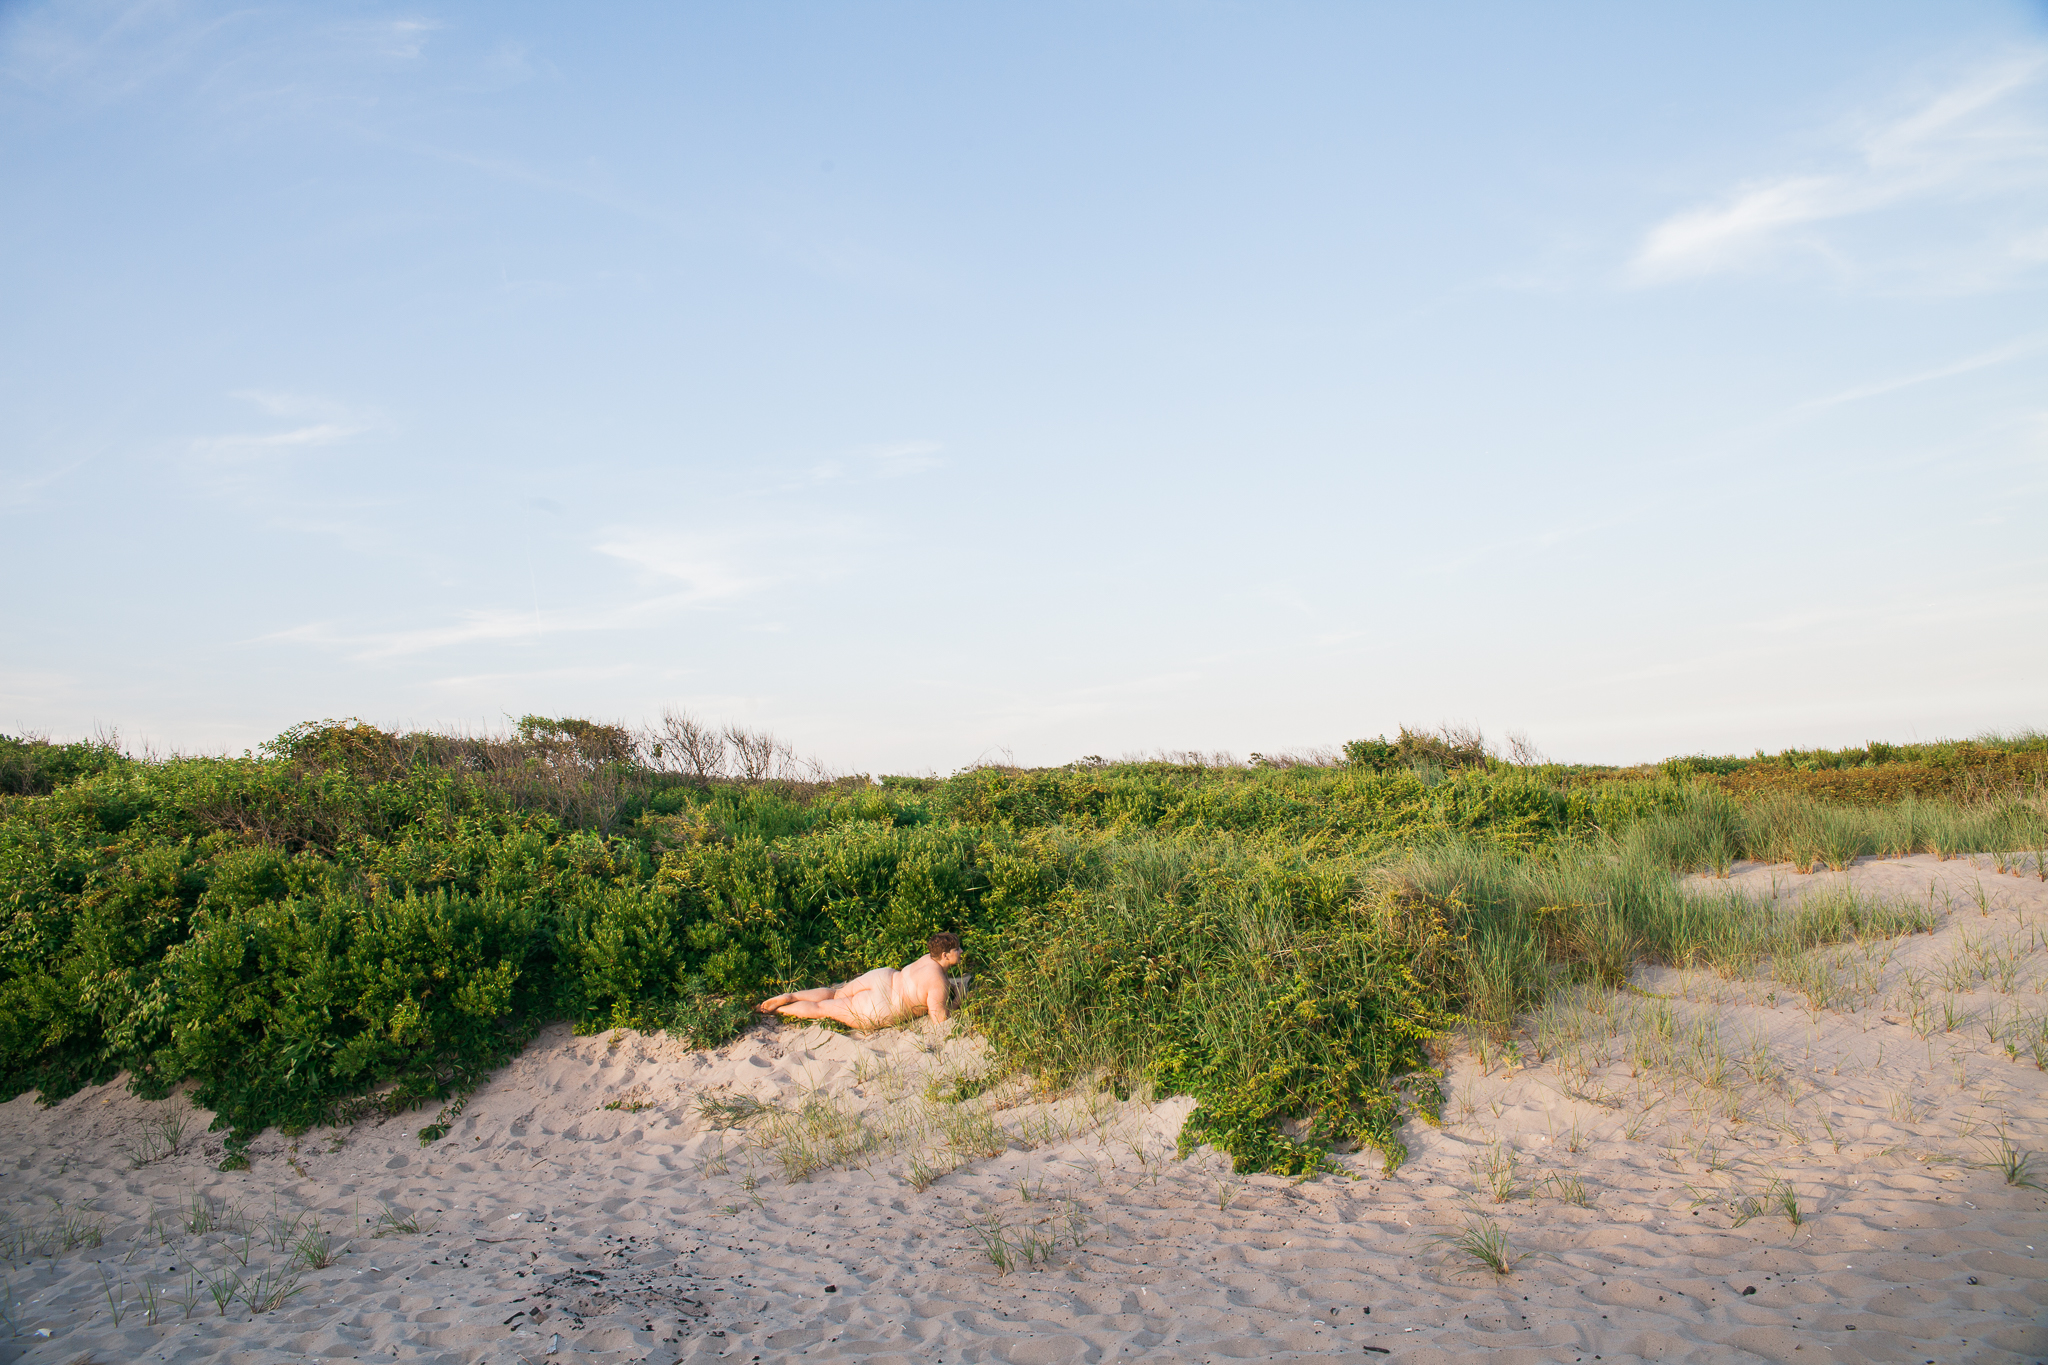 whomstudio_laura-delarato-fort-tilden-beach-nyc_0598-2048.jpg